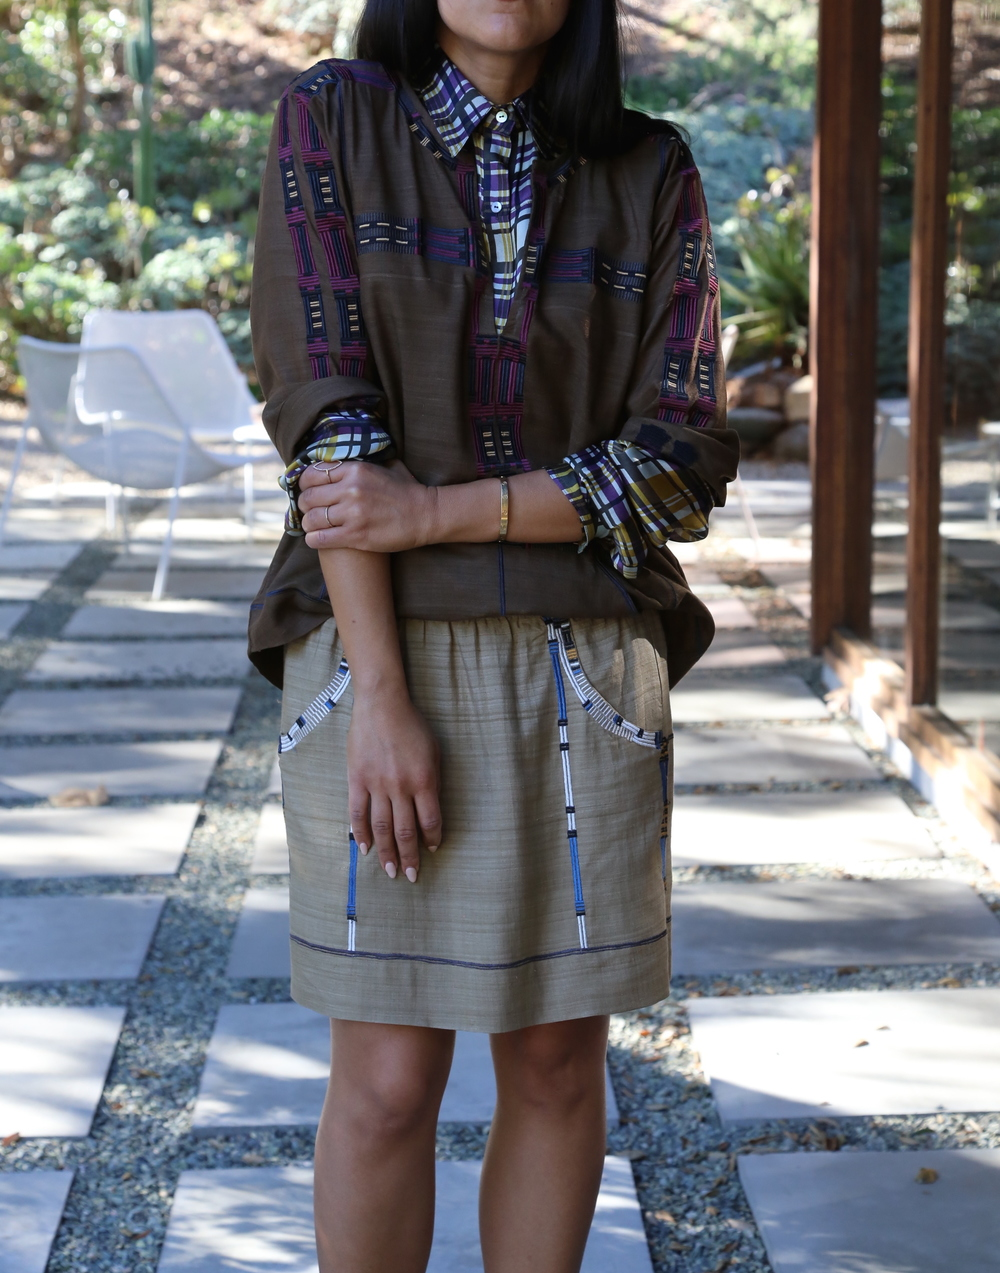 isabel-marant-boho-skirt-top-chloe-heels-army-green-los-angeles.jpg